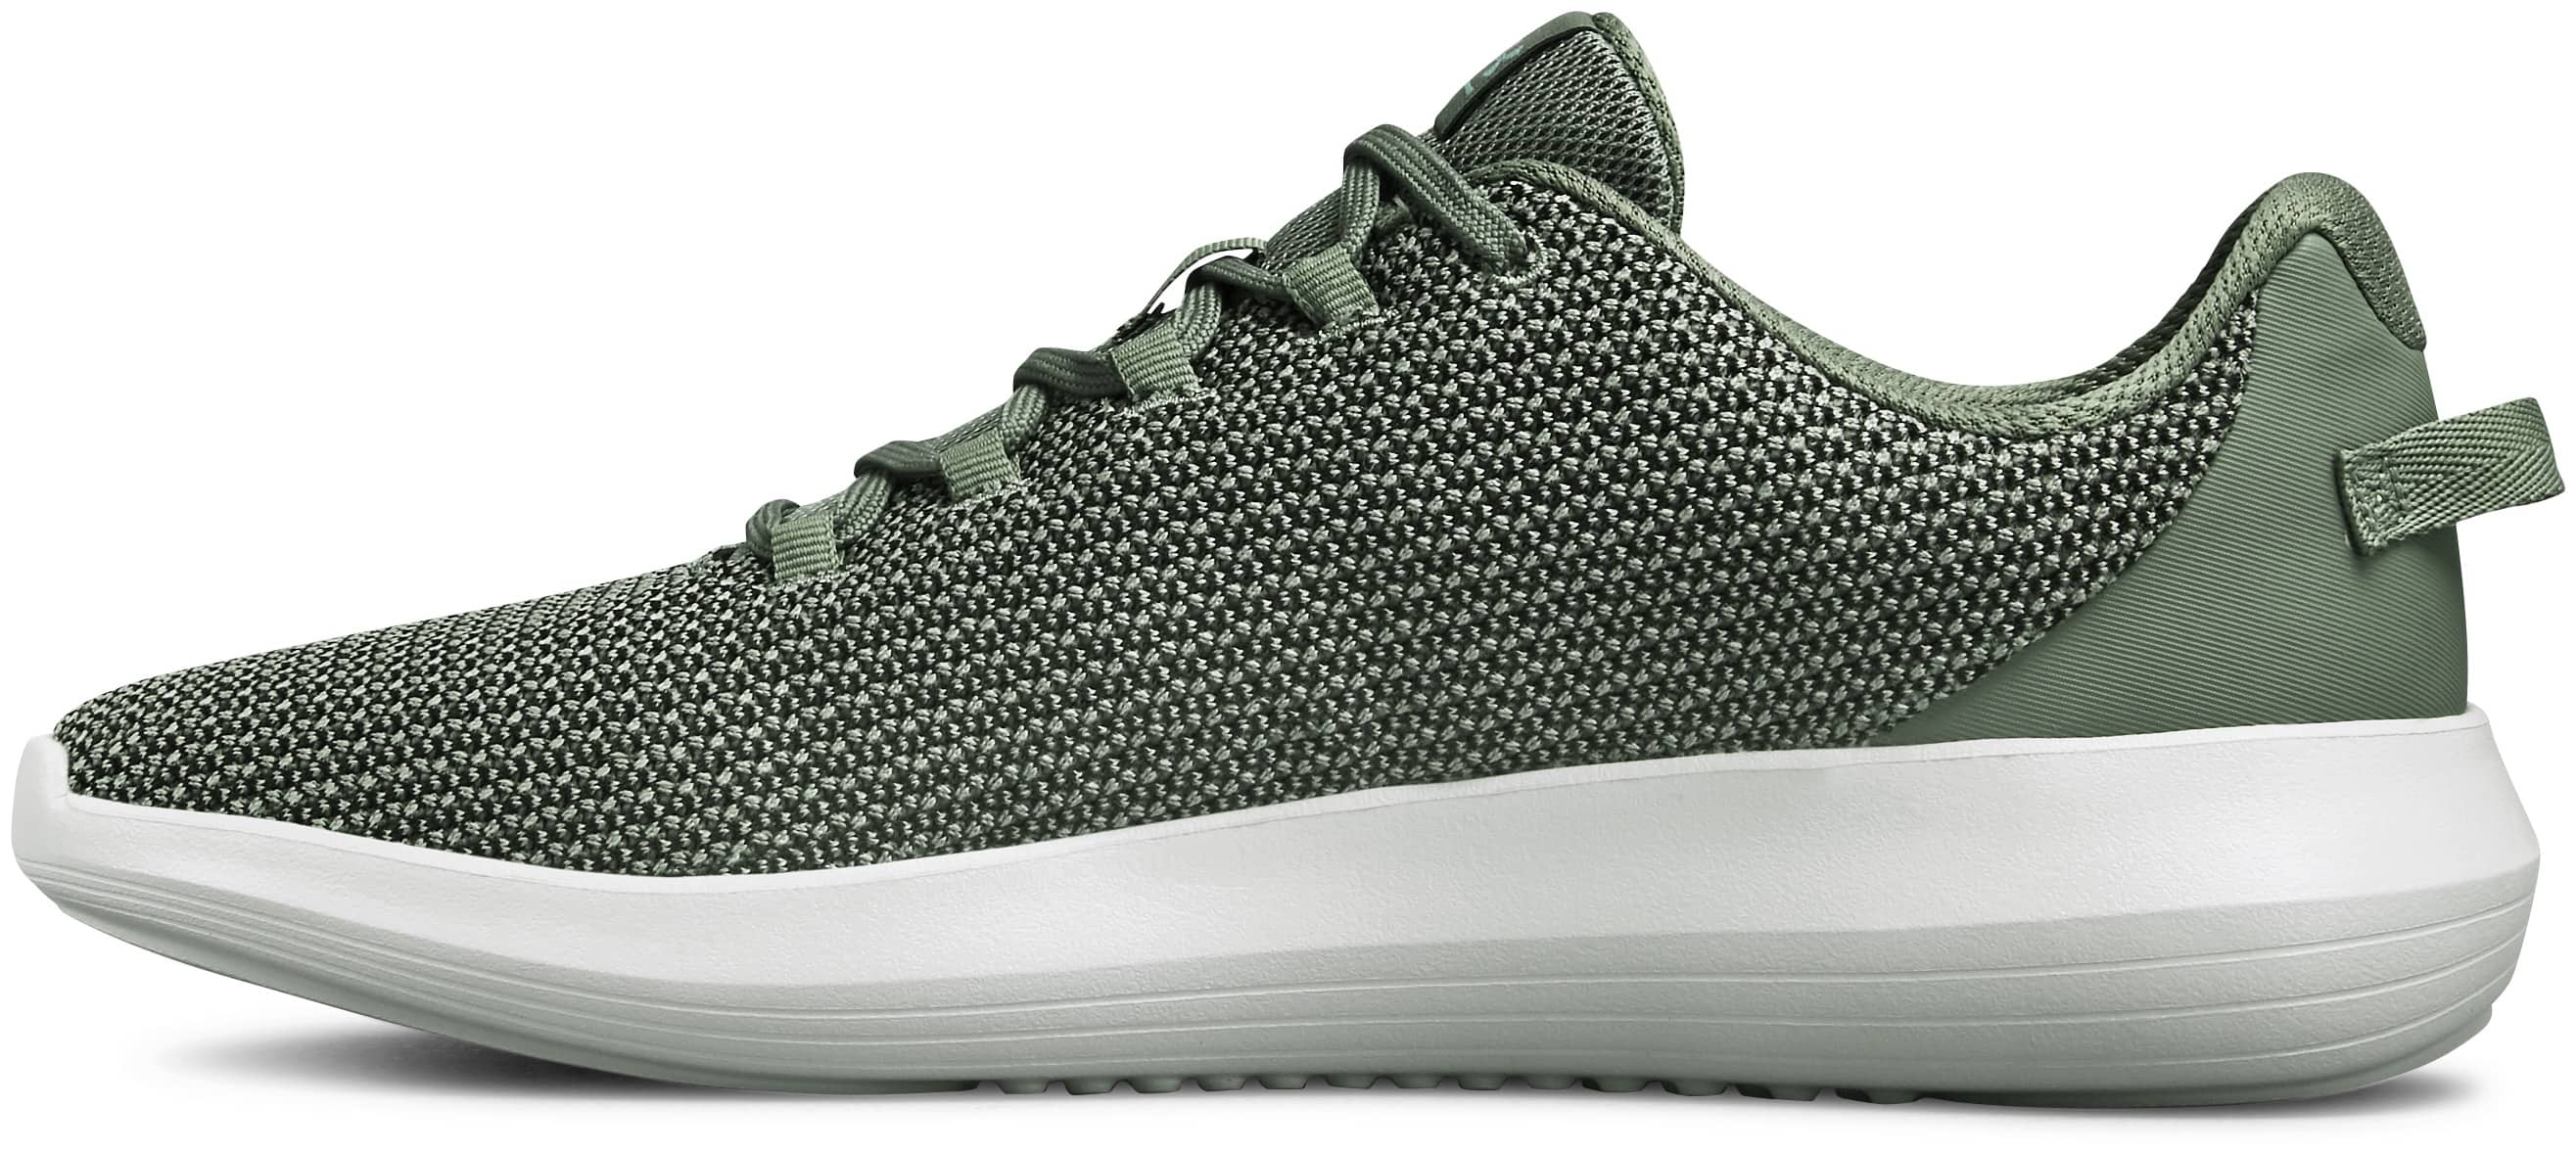 Under Armour Ripple, Green – 3021186-300_A